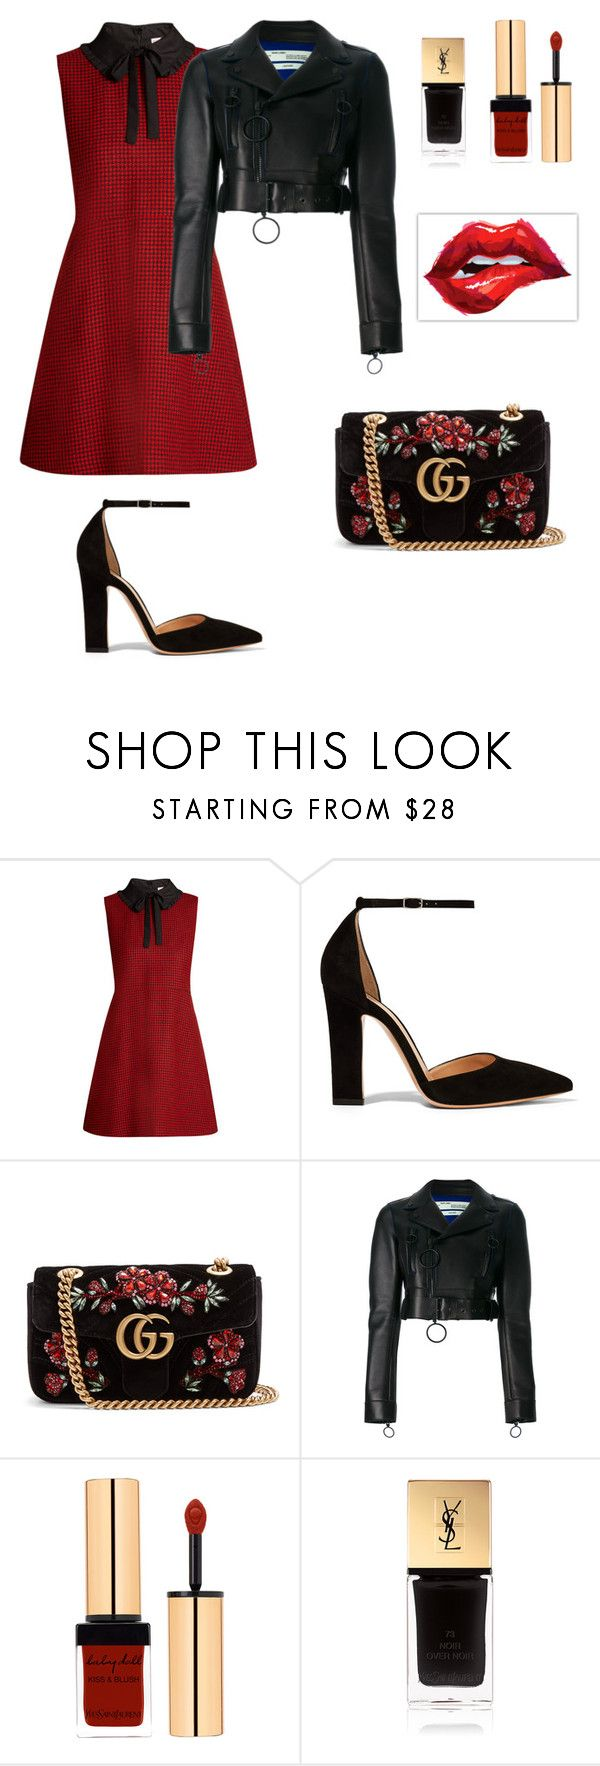 """""""Heart of glass"""" by kamiren ❤ liked on Polyvore featuring RED Valentino, Gianvito Rossi, Gucci, Off-White and Yves Saint Laurent"""